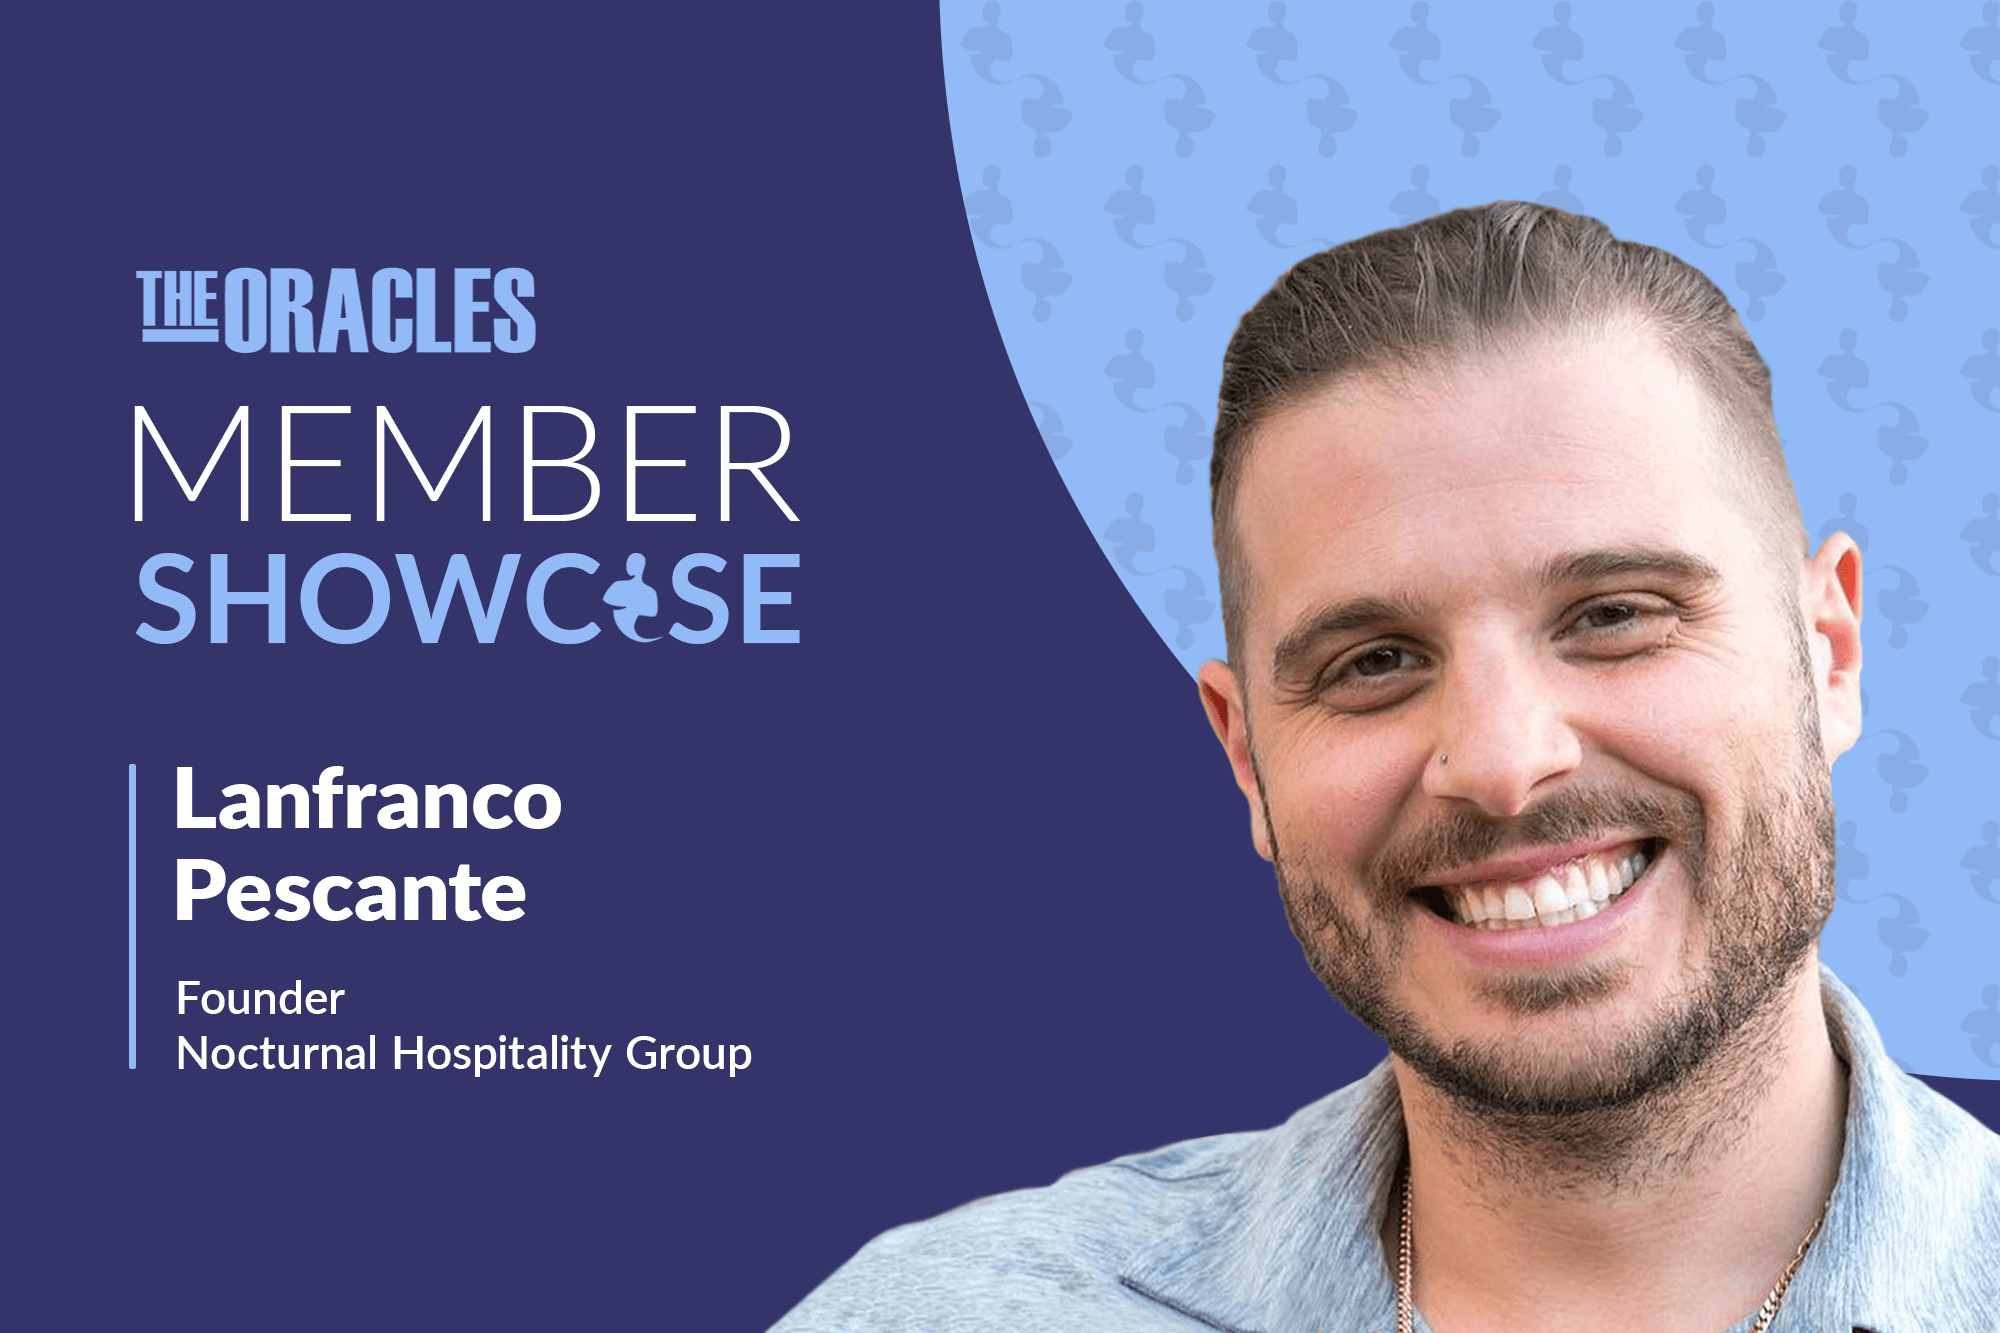 From Dishwasher to Hosting Events Featuring Nelly and Avicii: Why Italian Immigrant Lanfranco Pescante Believes the American Dream Is Still Alive